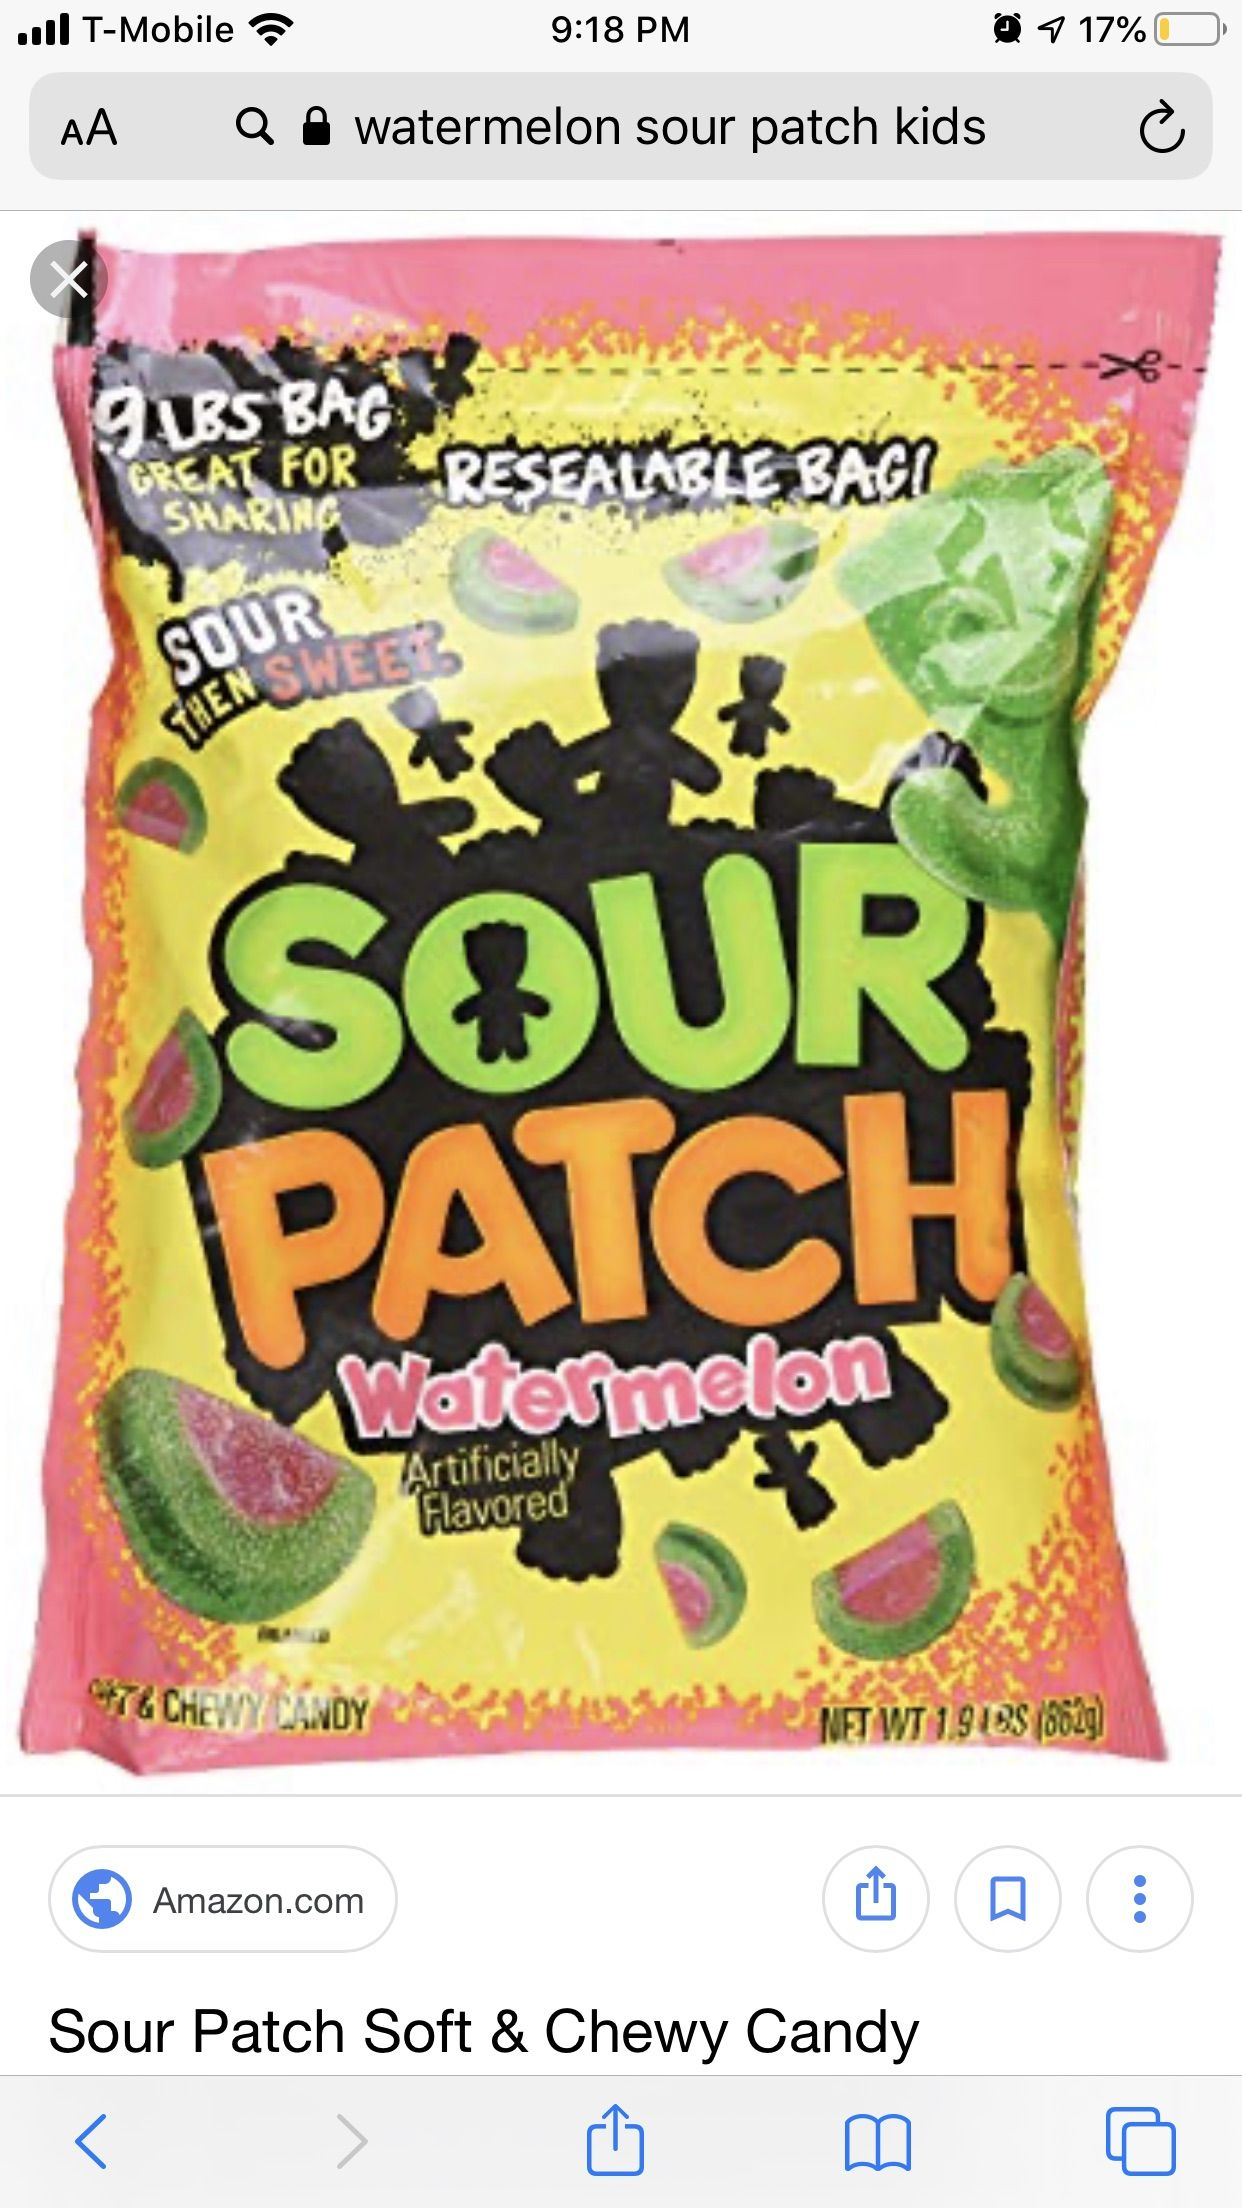 Pin By Tori Brockell On Tori S Heart Chewy Candy Sour Patch Kids Sour Patch Watermelon